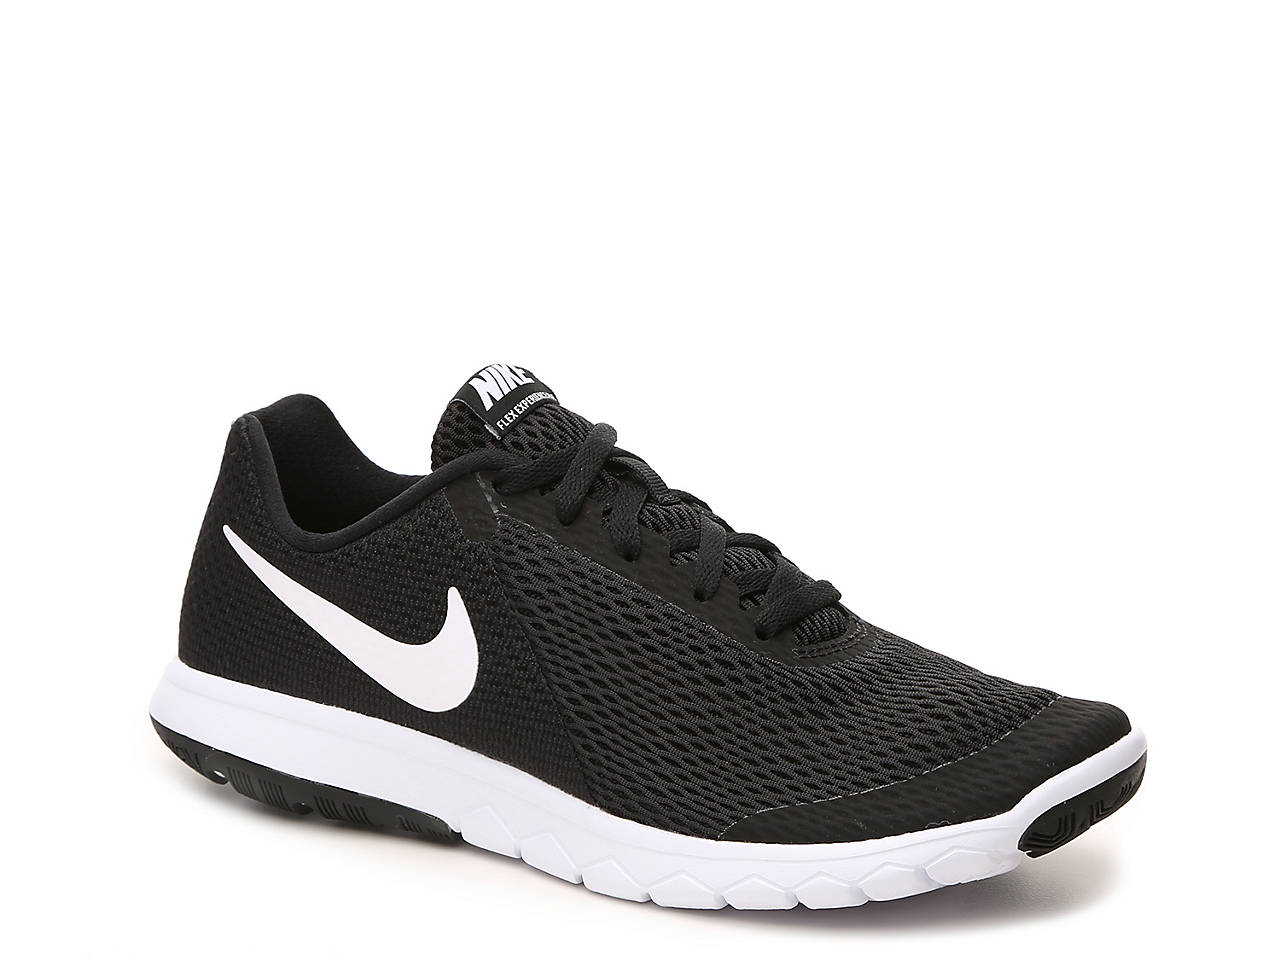 Flex Experience Run 6 Lightweight Running Shoe - Women's. Nike